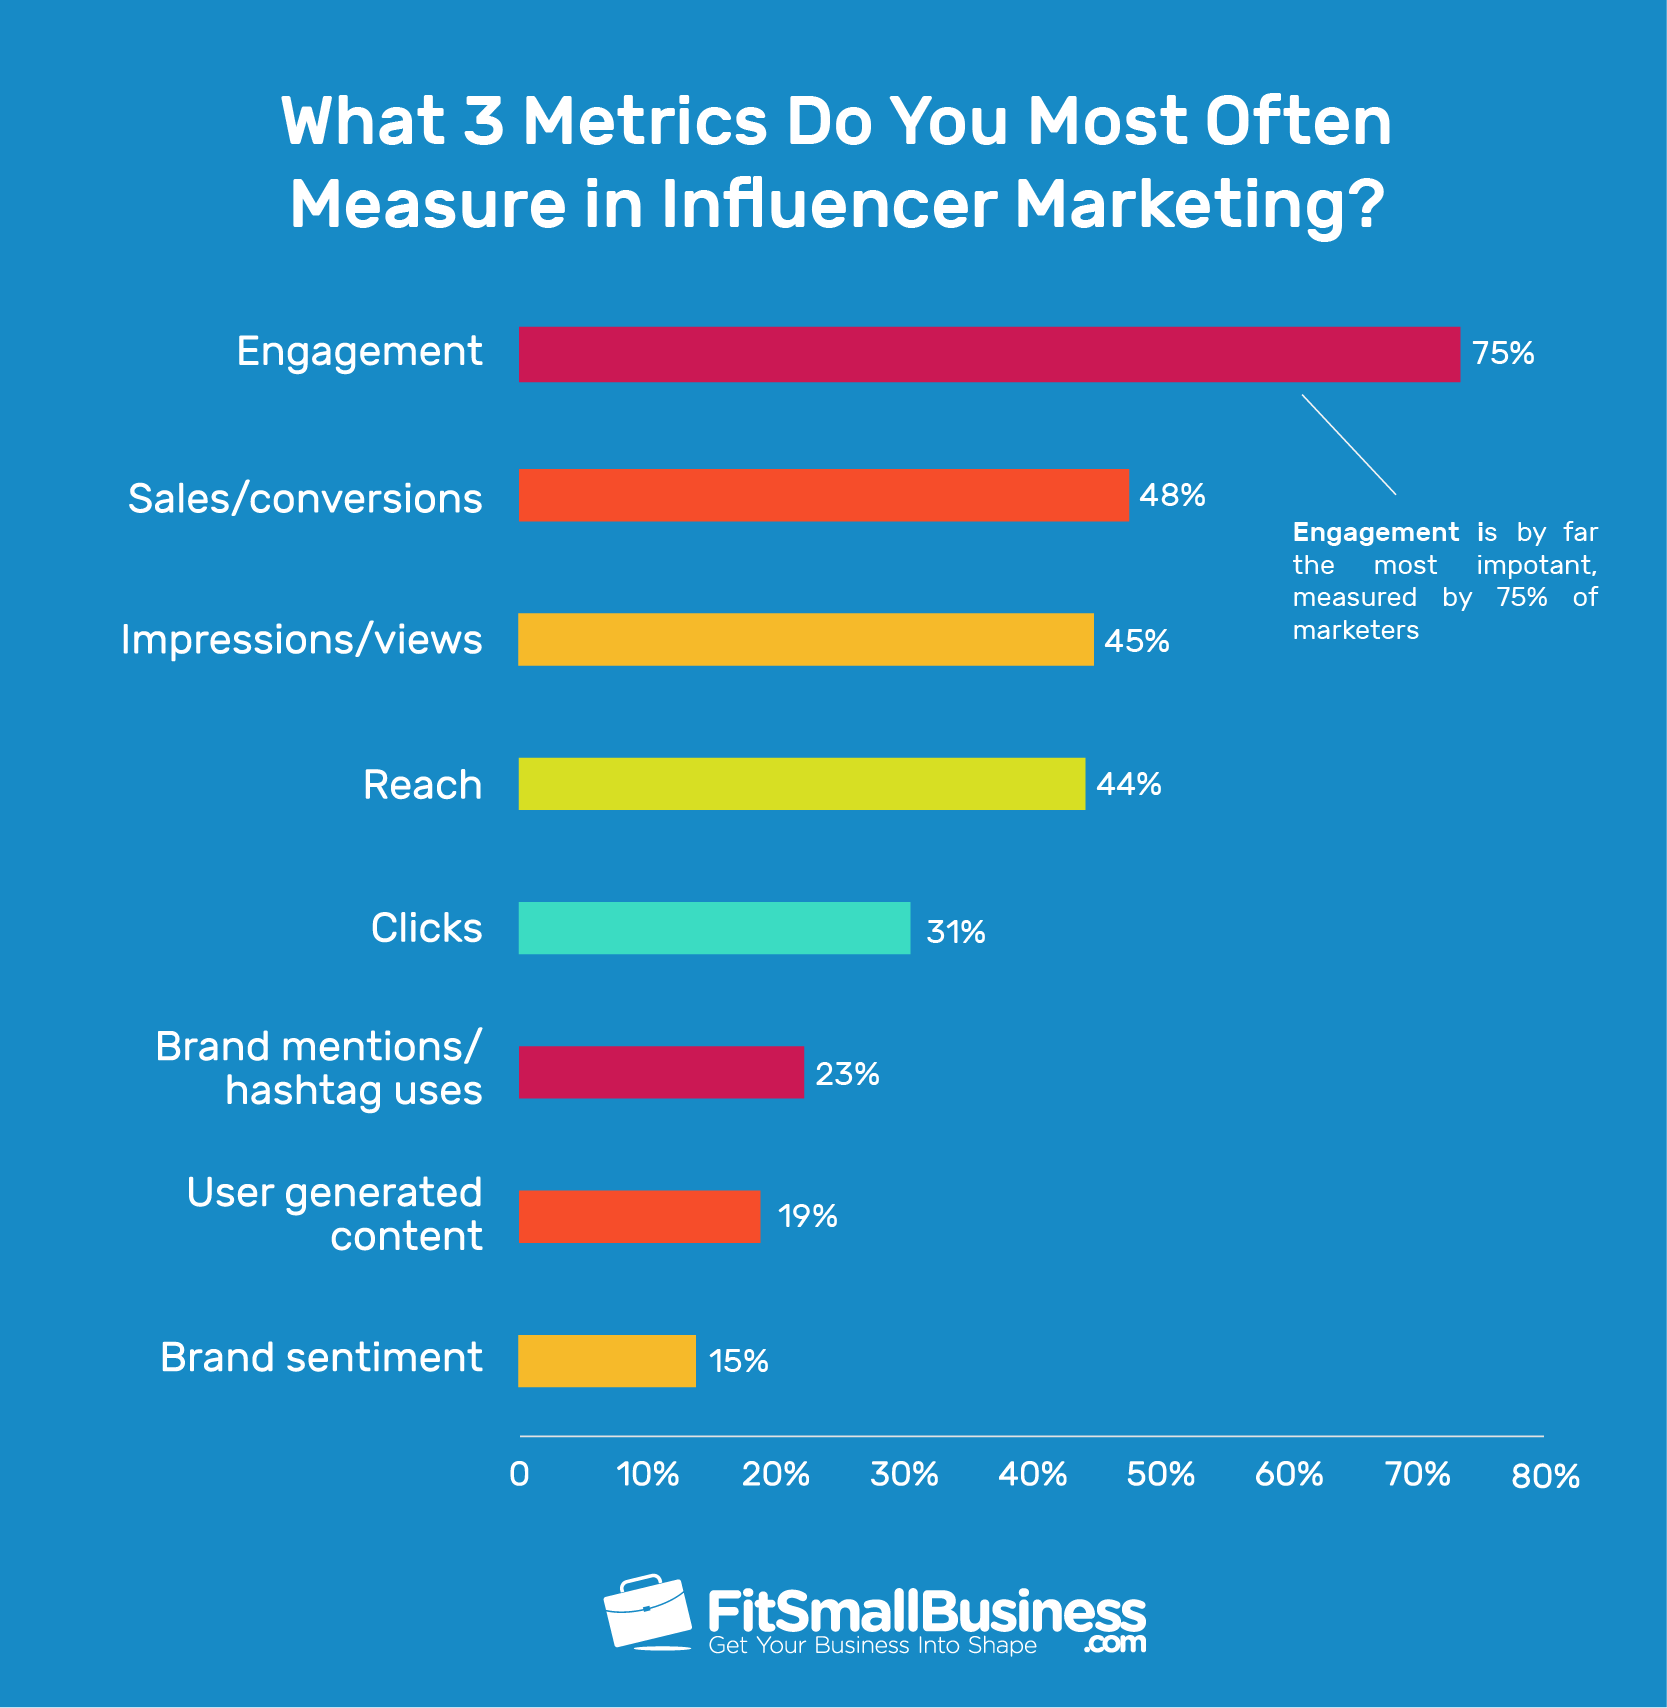 Top key performance indicators for influencer marketing are engagement, sales, and impressions